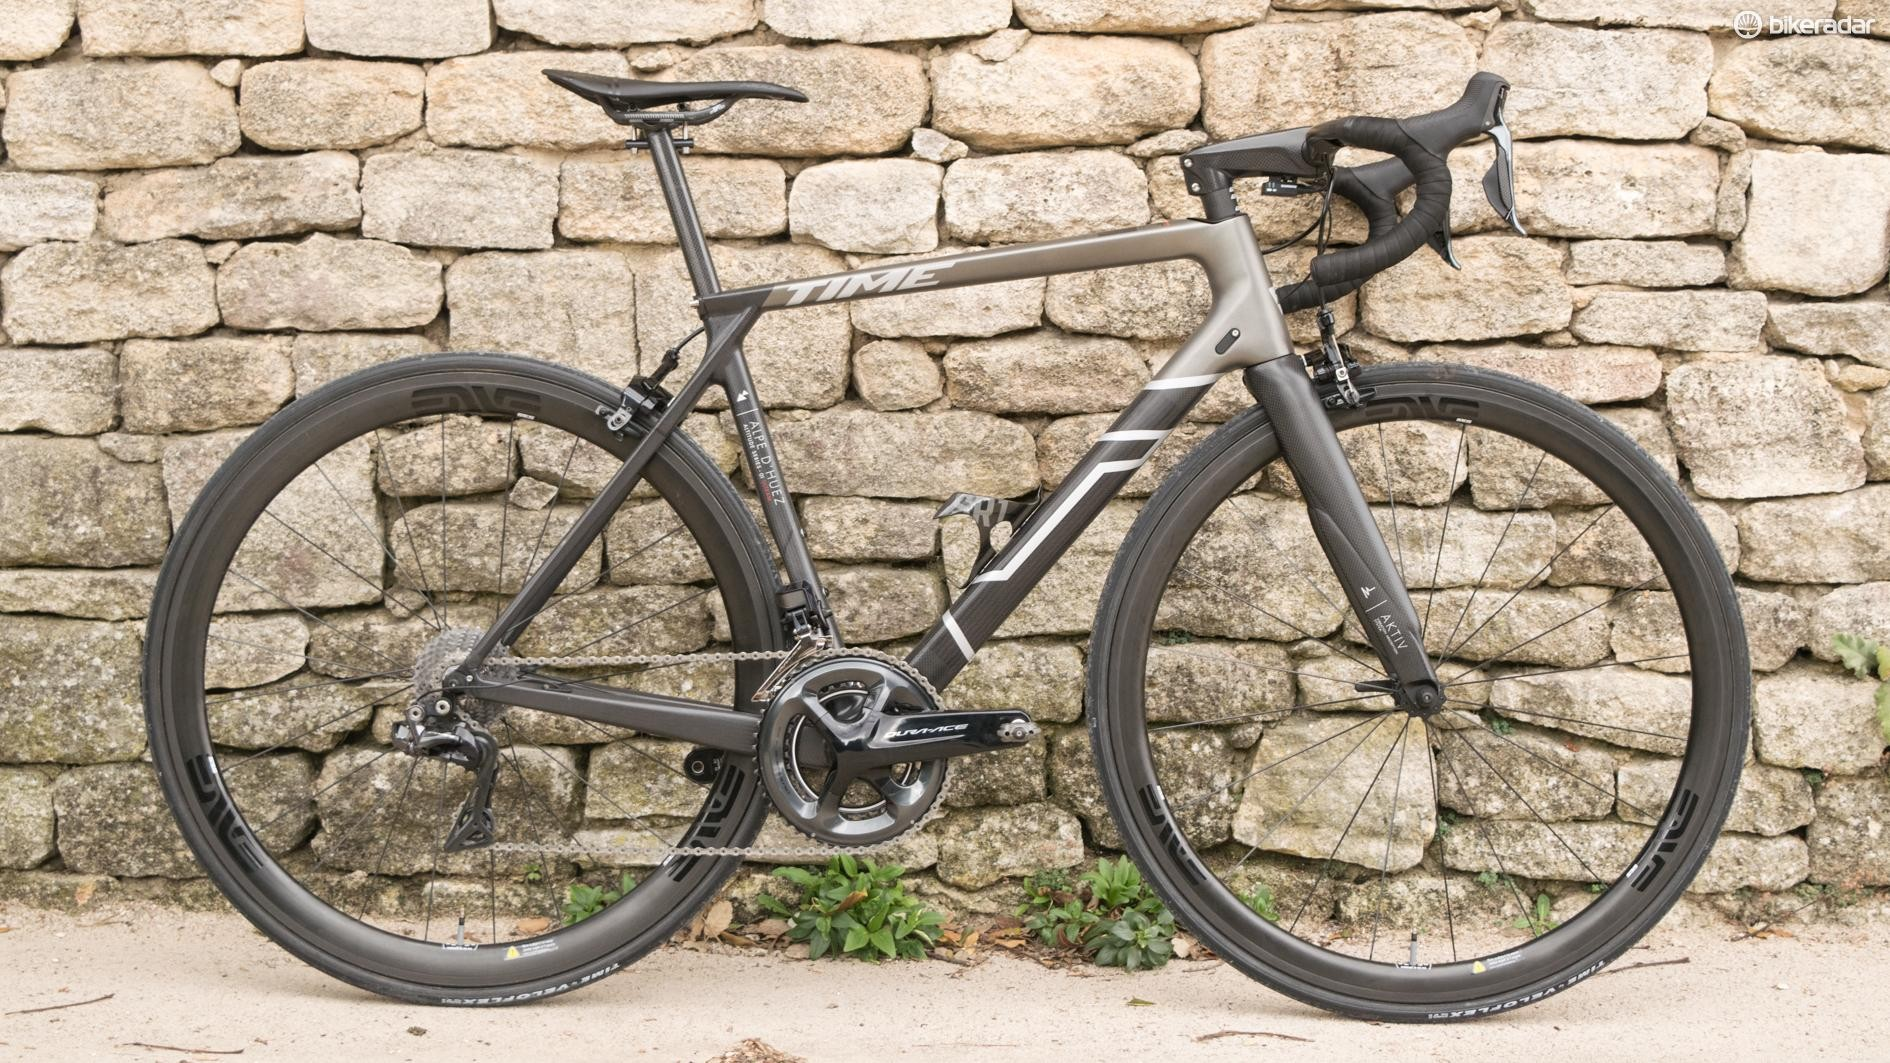 Read my first ride review for impressions of this no-holds-barred Ulteam edition Alpe d'Huez